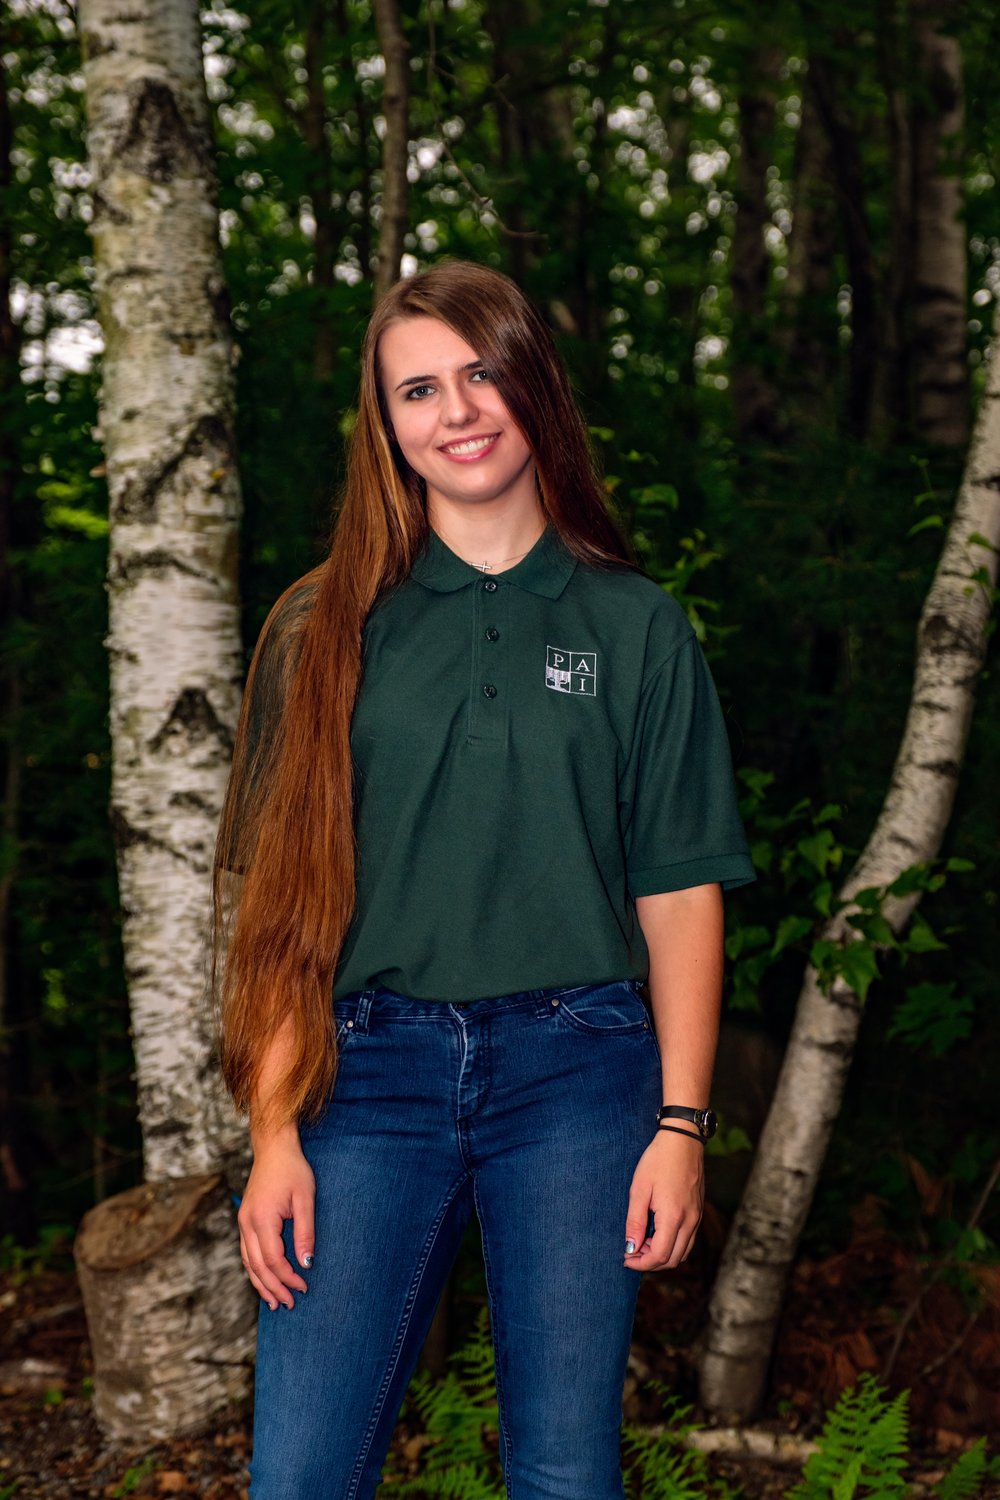 """""""The Hands-On experience and guidance I received as an intern was incredible""""  - - Maria, Landscape Design Intern 2018"""